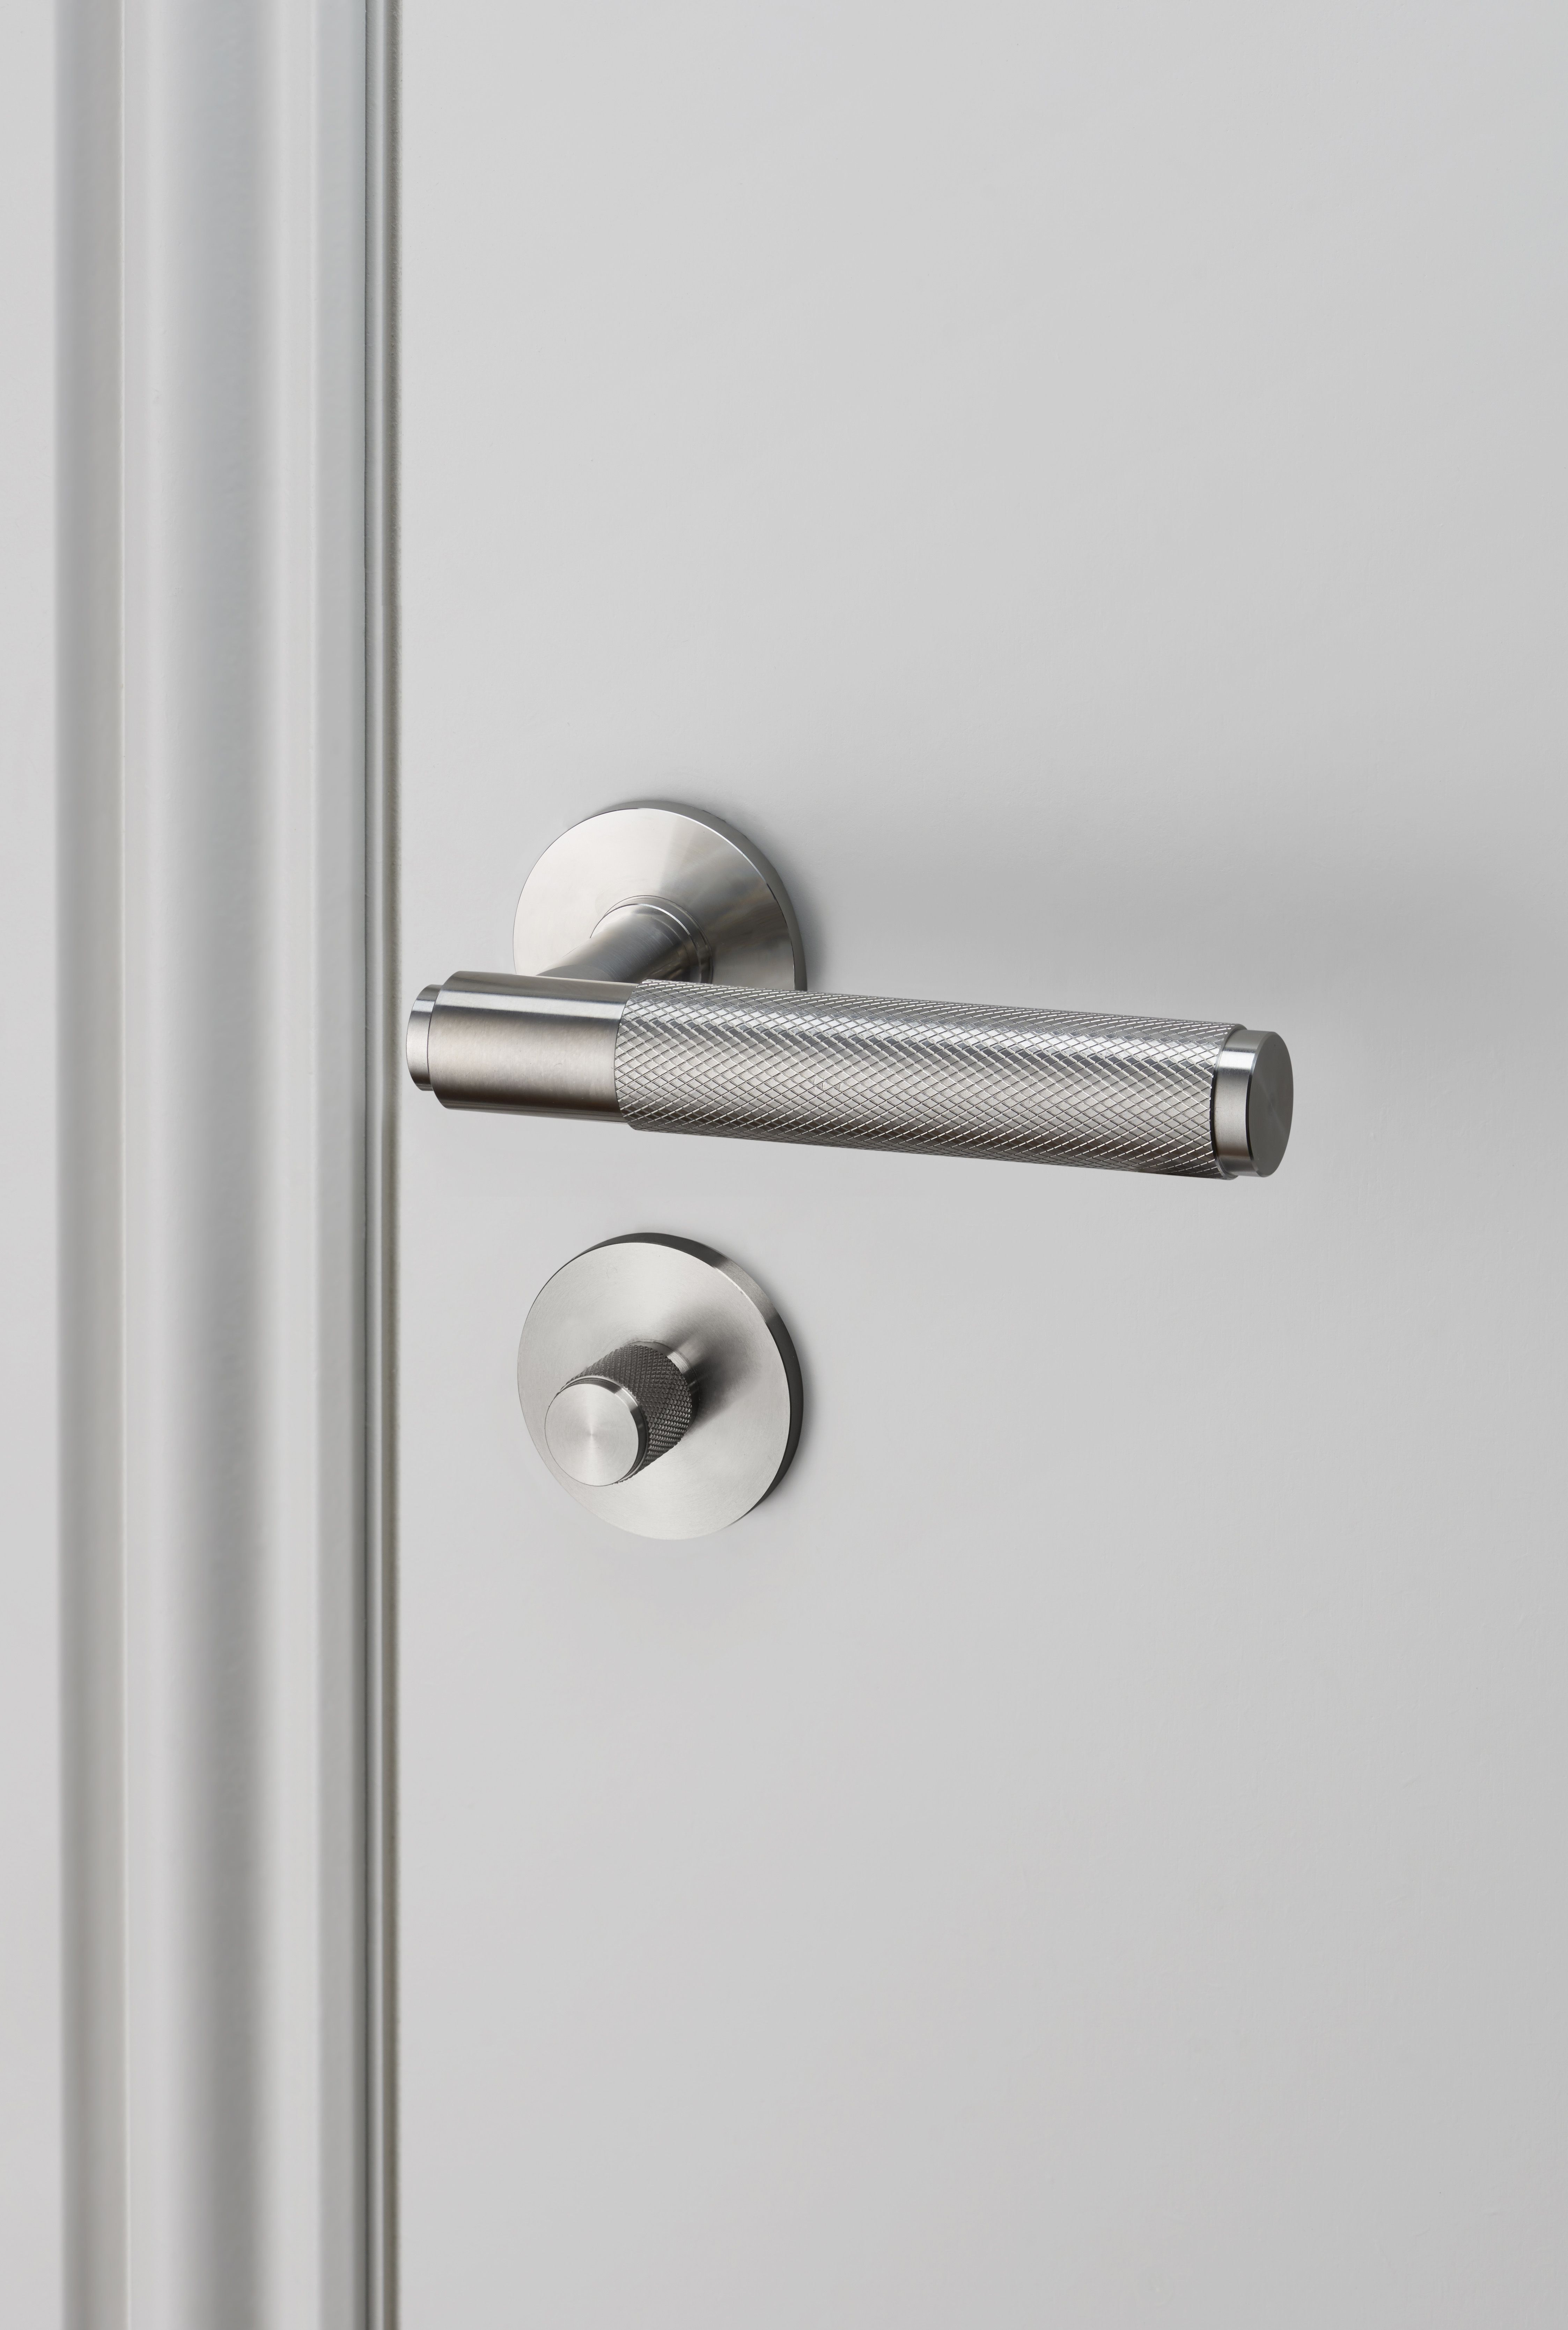 Door Lever Handle Steel And Thumbturn Lock By Buster Punch